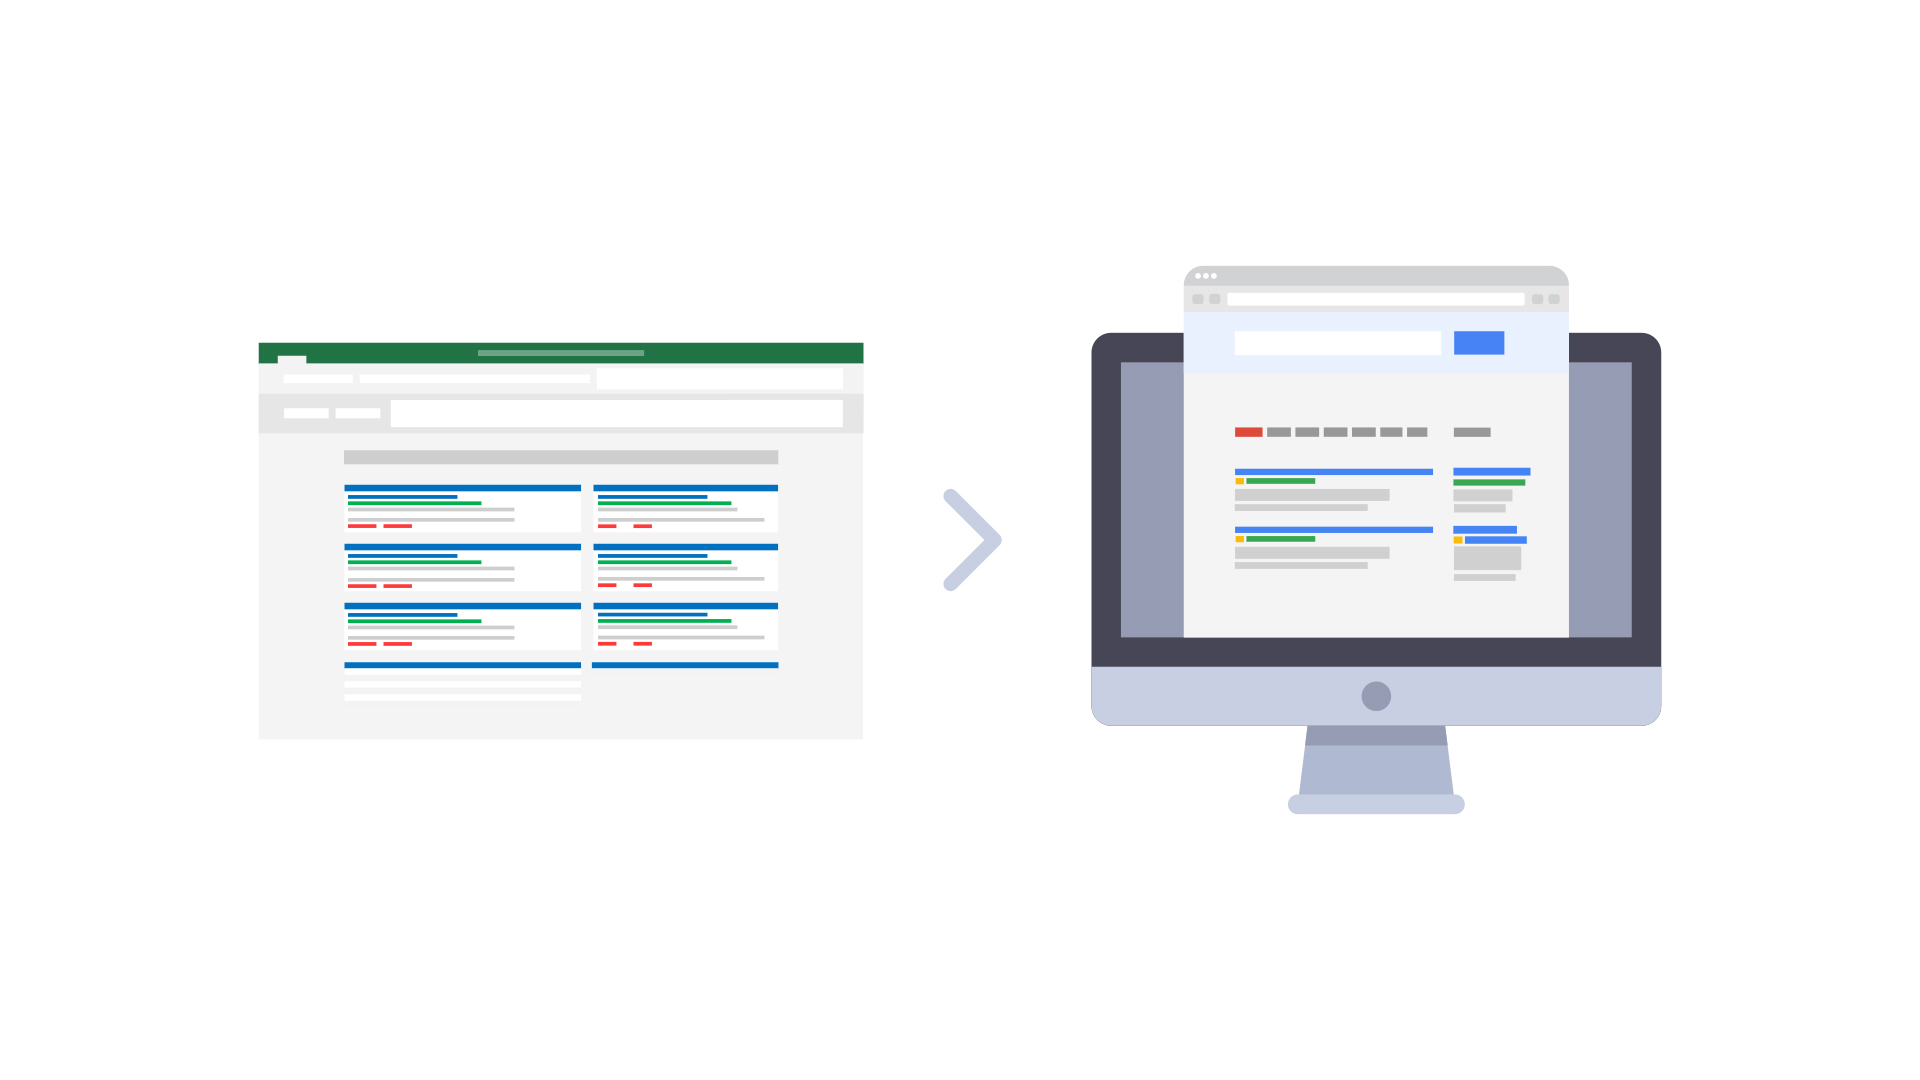 Your guide to google ads. How To Mock Up Google Ads For Your Client Google Ads Campaign Preview Tool Ppc Ad Editor